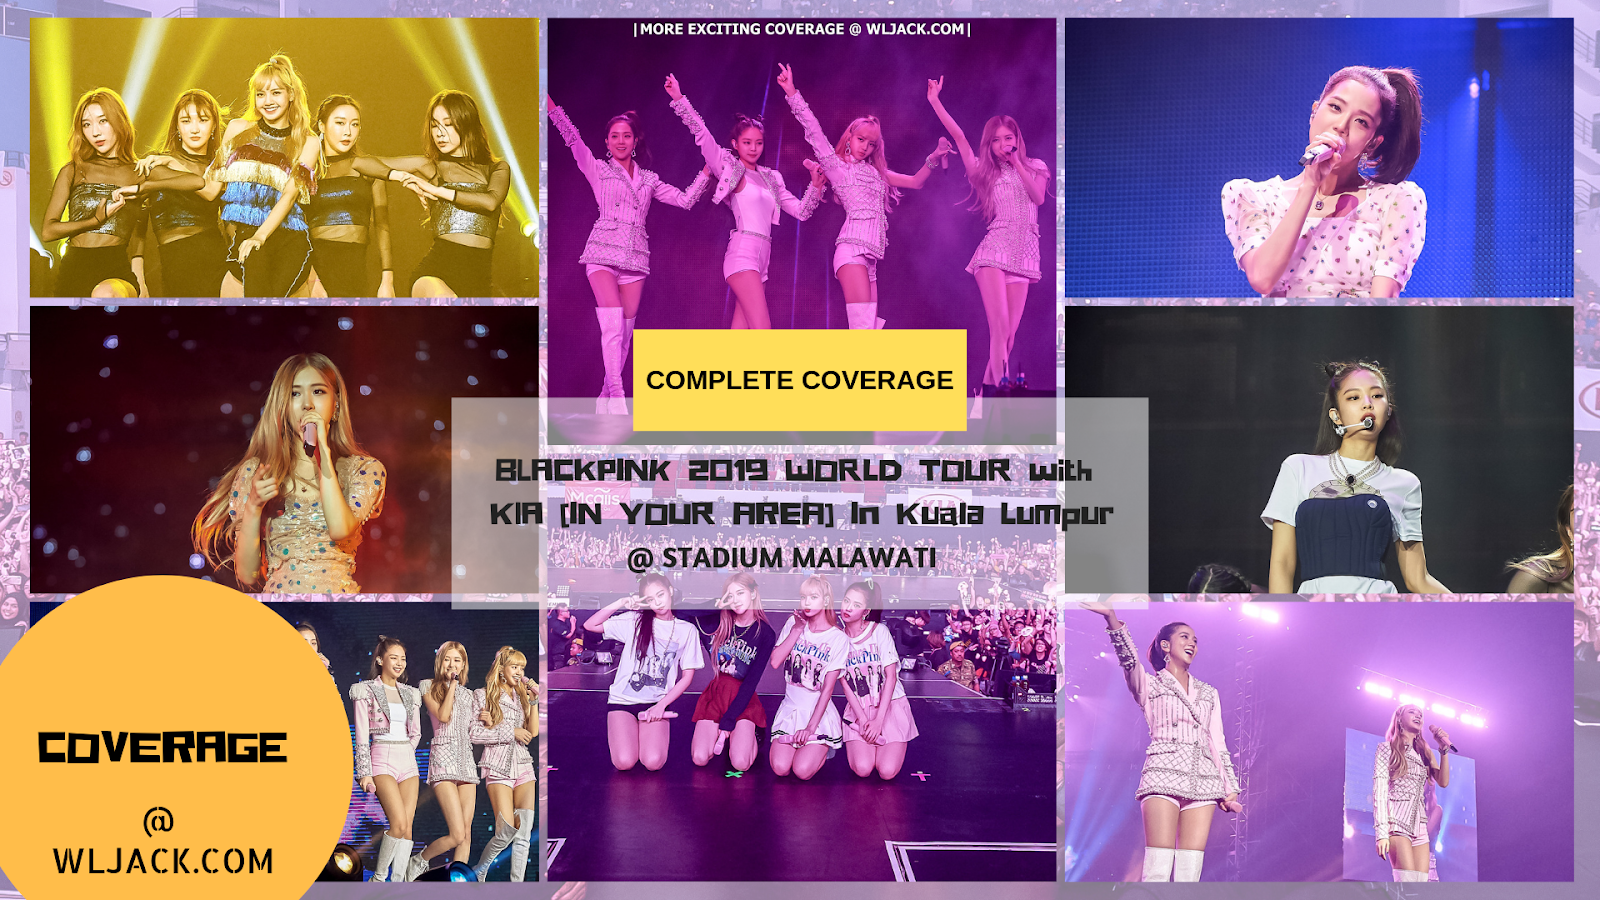 Complete Coverage] BLACKPINK 2019 WORLD TOUR with KIA [IN